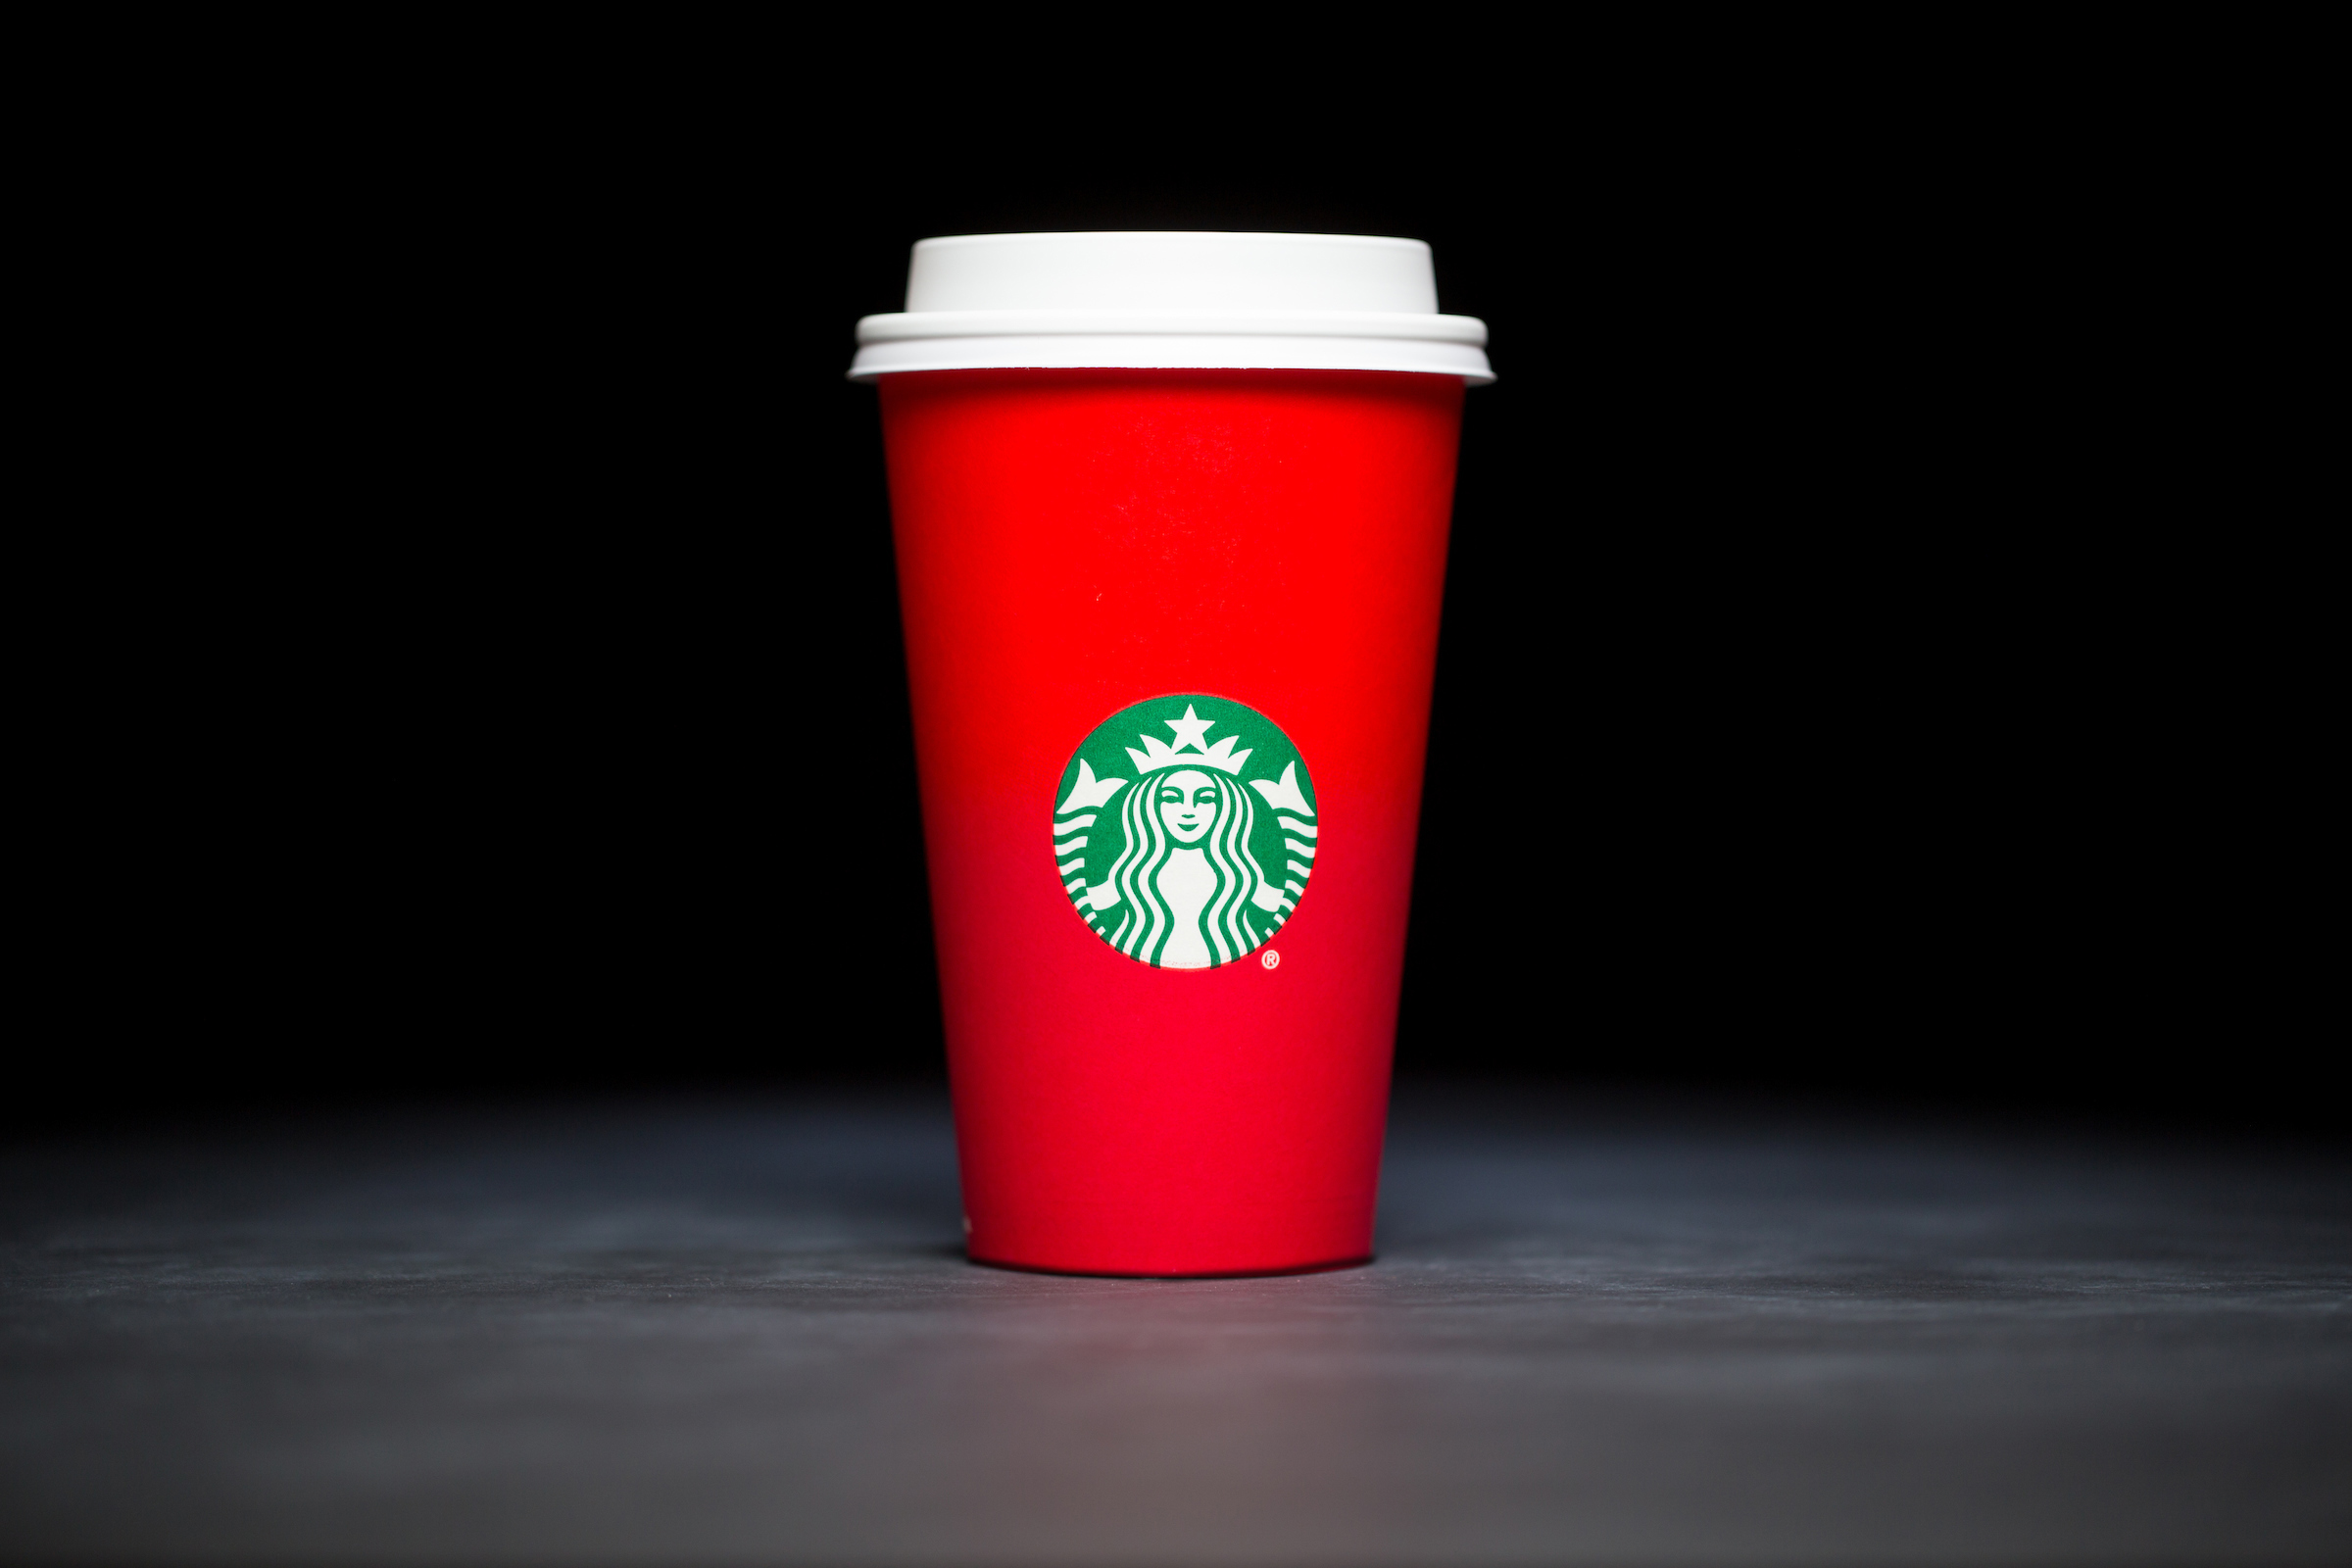 2015: For 20 years, Starbucks have released a range of holiday cup designs, most of them based around their world famous red cup. It's not easy to find the very first Starbucks holiday cups, which made their debut in stores in 1997. Few were saved, and electronic design files were lost in an earthquake in 2001. Even an Internet search is unyielding, with the cups having made their arrival long before the first selfie. But, we have them here! Click on for a photos of all 20 holidays cup designs. (Image: Joshua Trujillo/Cover Images)